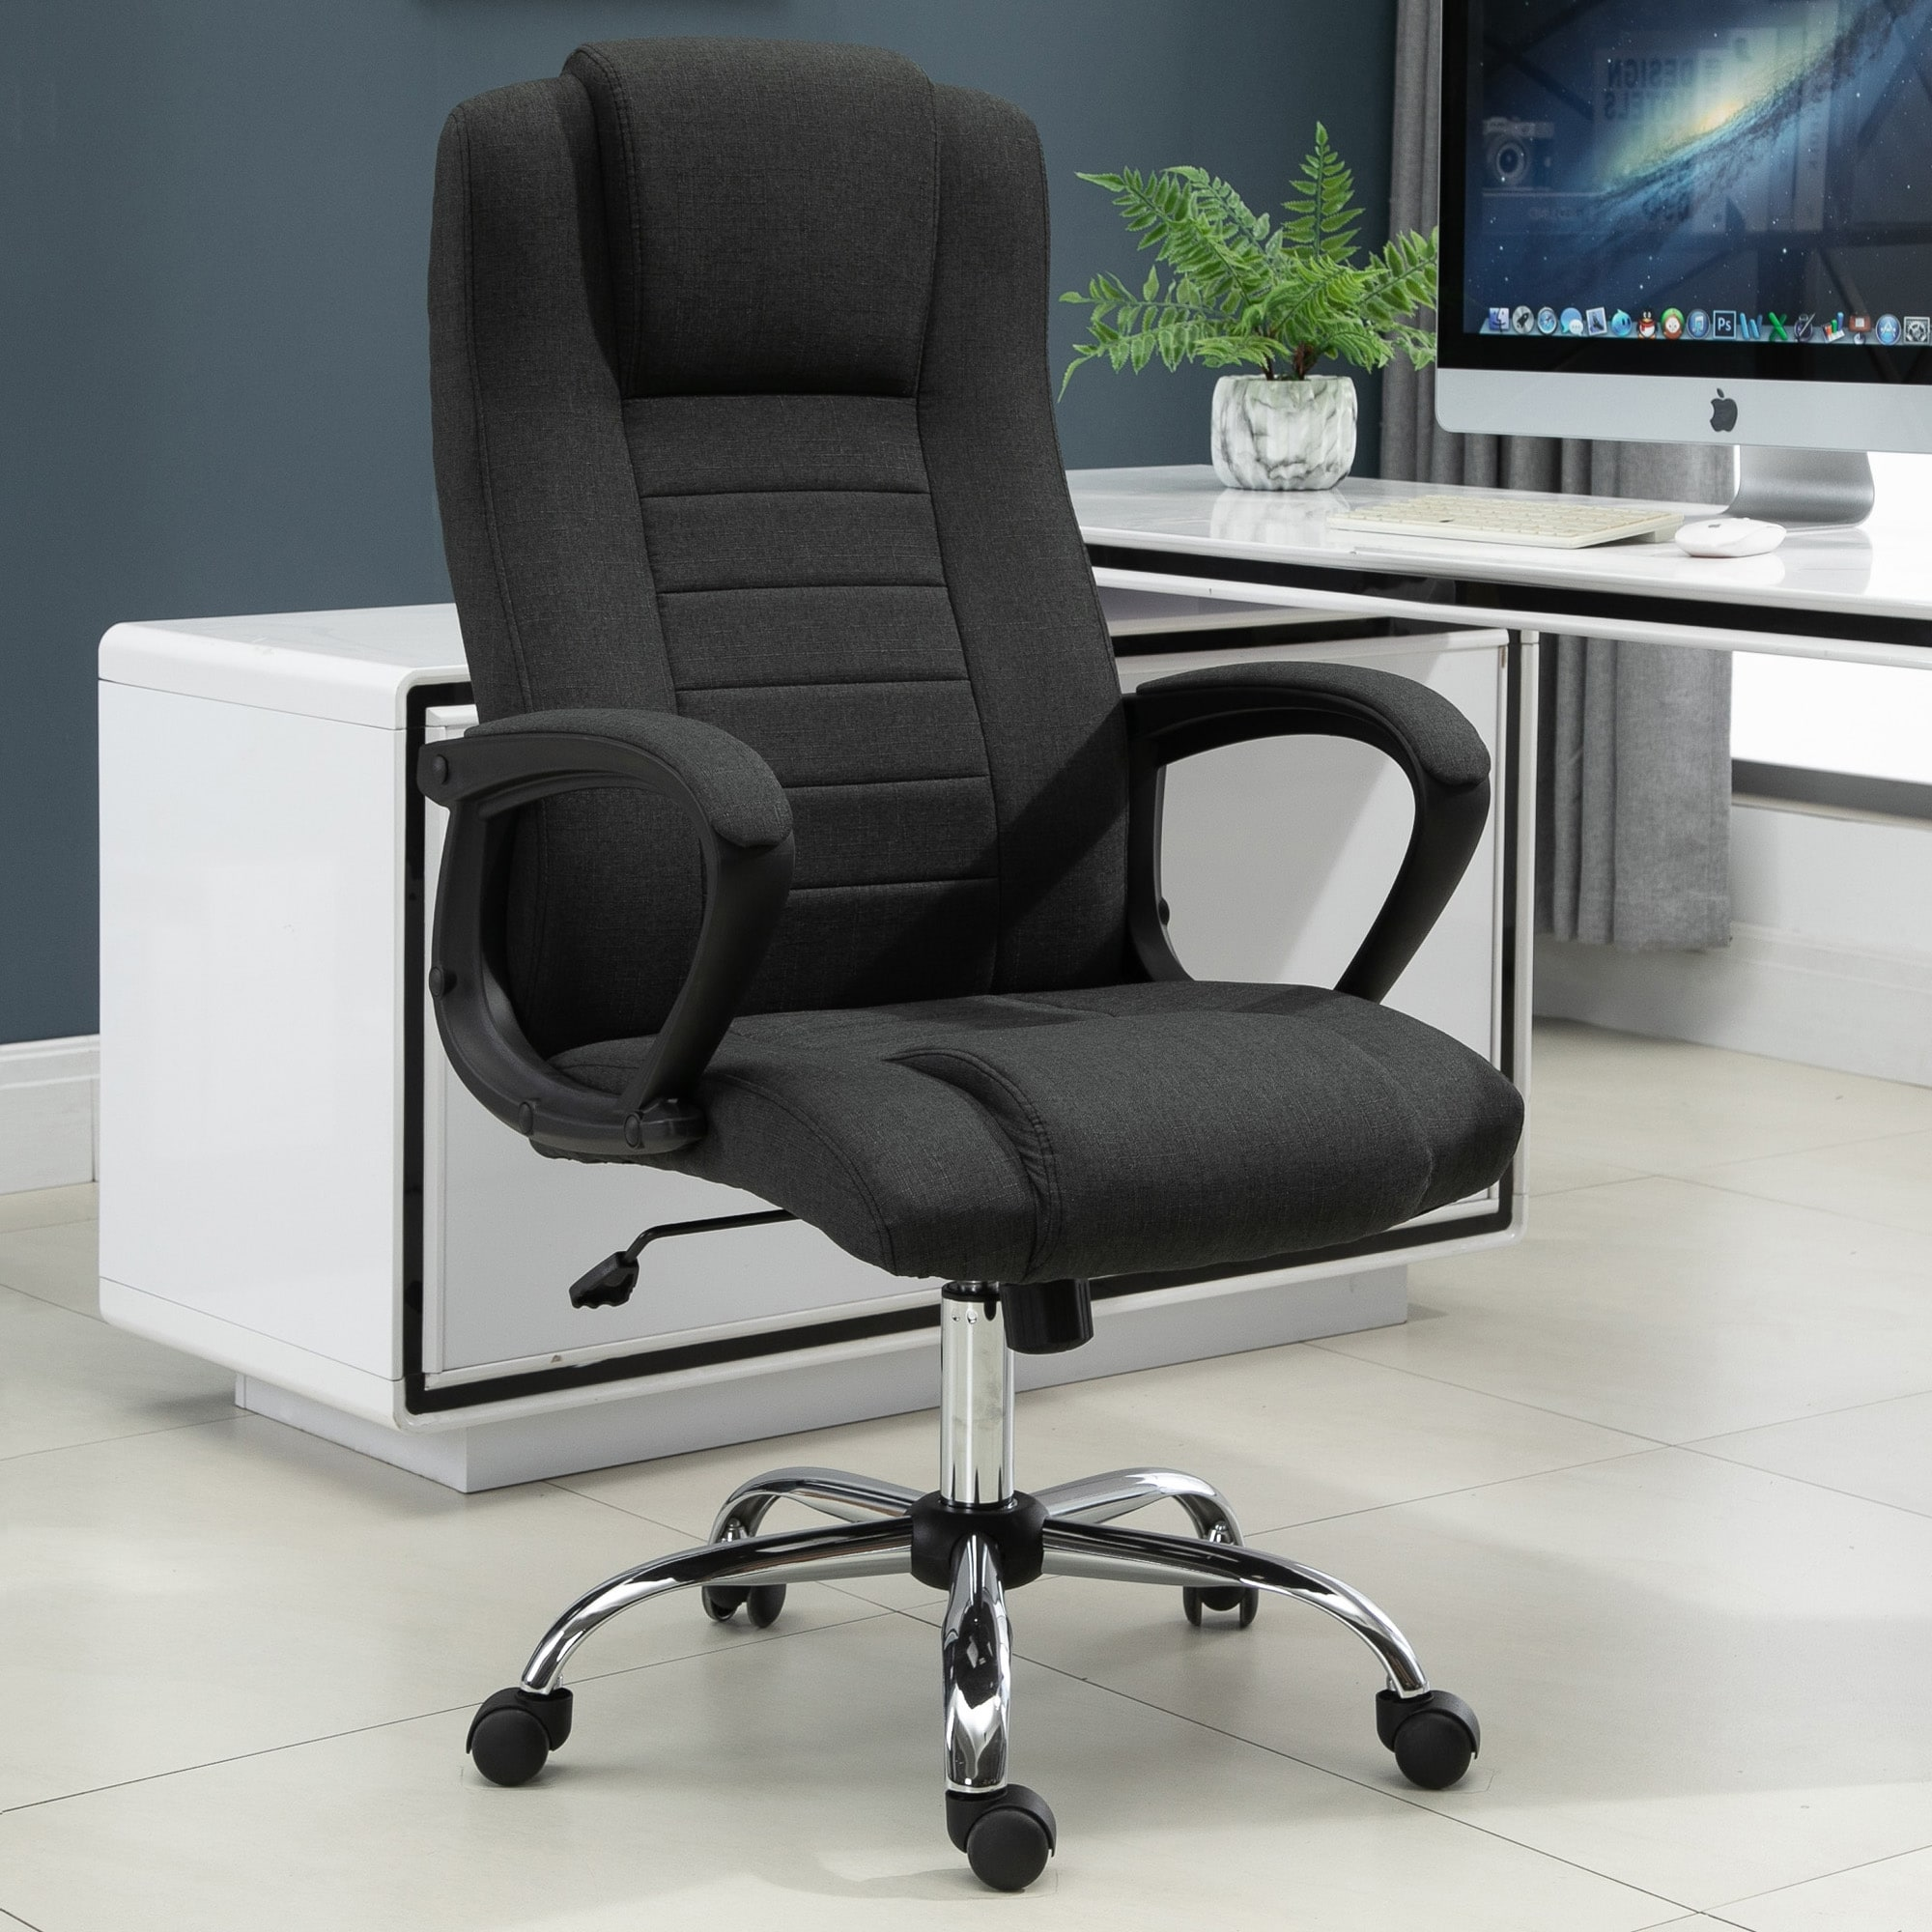 Shop Vinsetto High Back 360 Swivel Executive Computer Office Chair With Adjustable Height Comfort Tilt Function Black Overstock 31661416